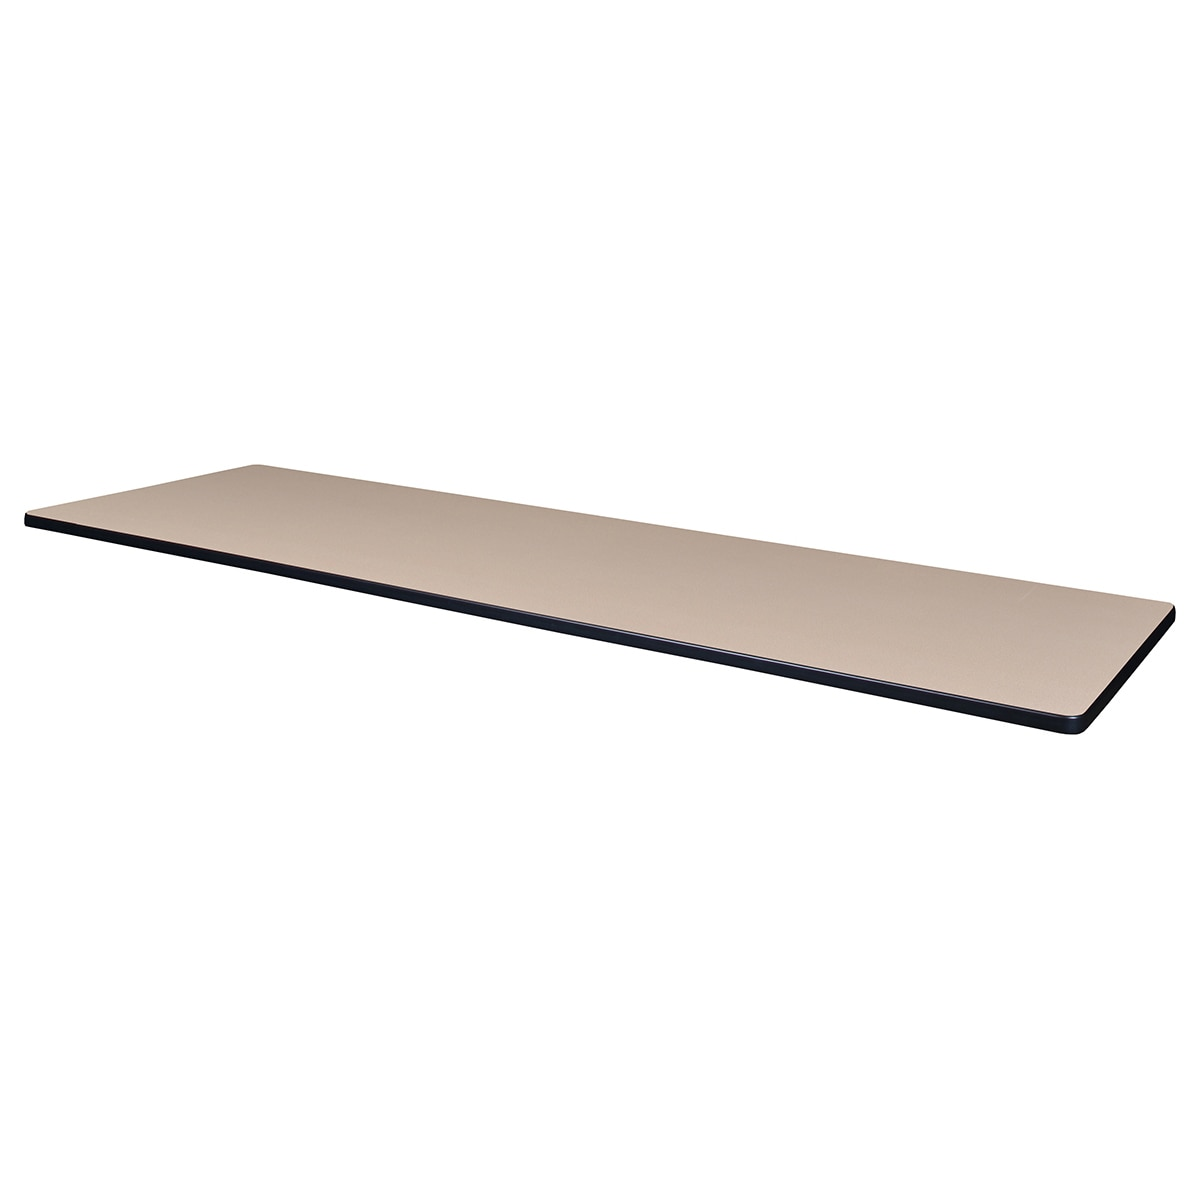 Shop Regency Seating Laminate 84 Inch X 24 Inch Rectangle Table Top   Free  Shipping Today   Overstock   16722584